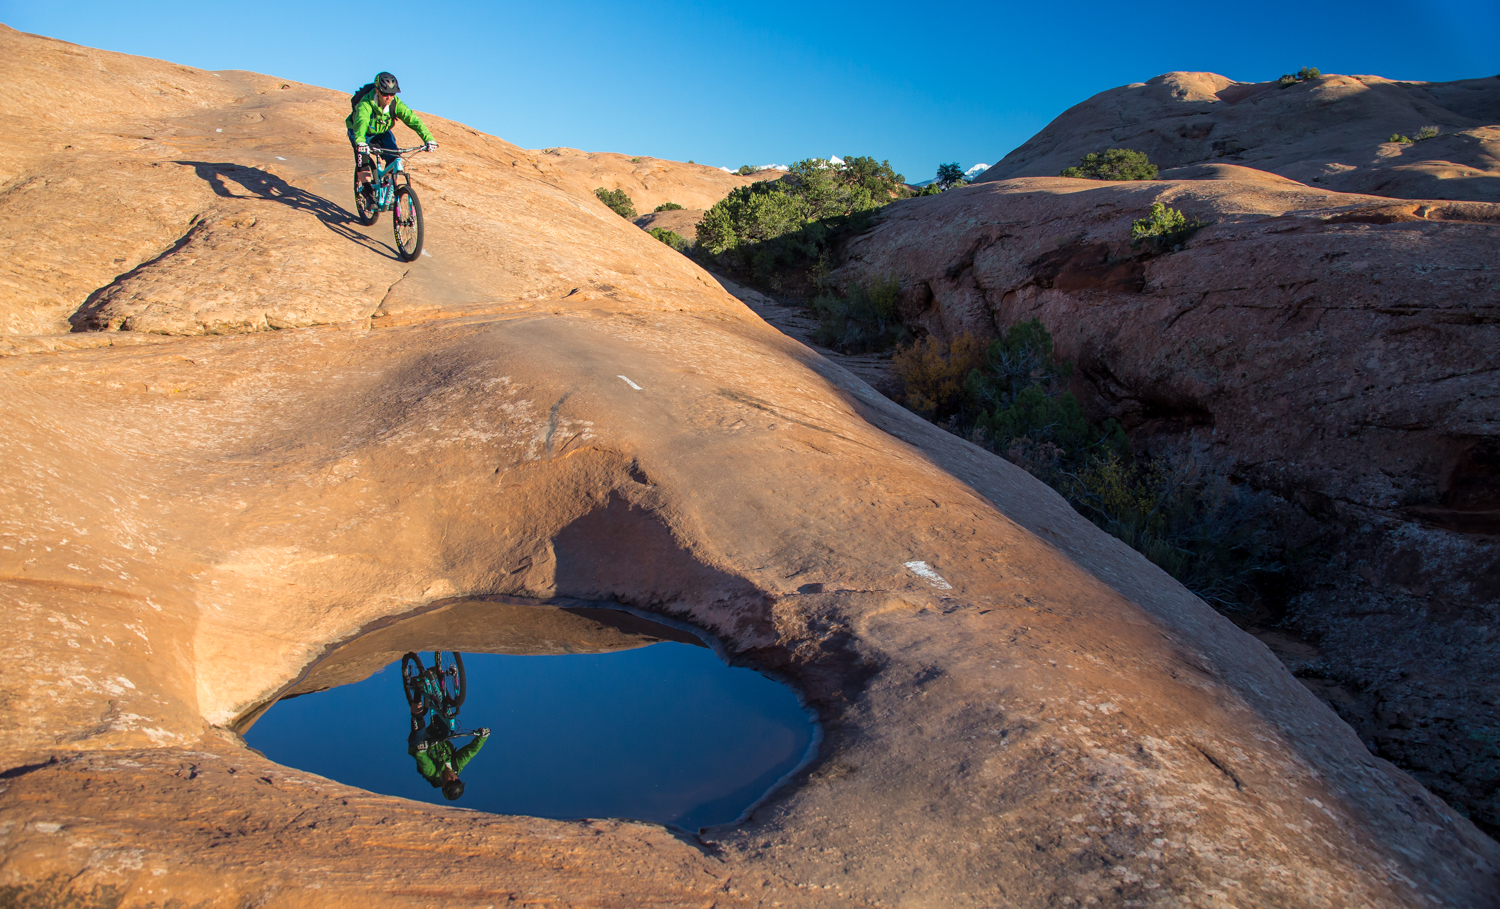 moab mountain biking slickrock trail chasing epic